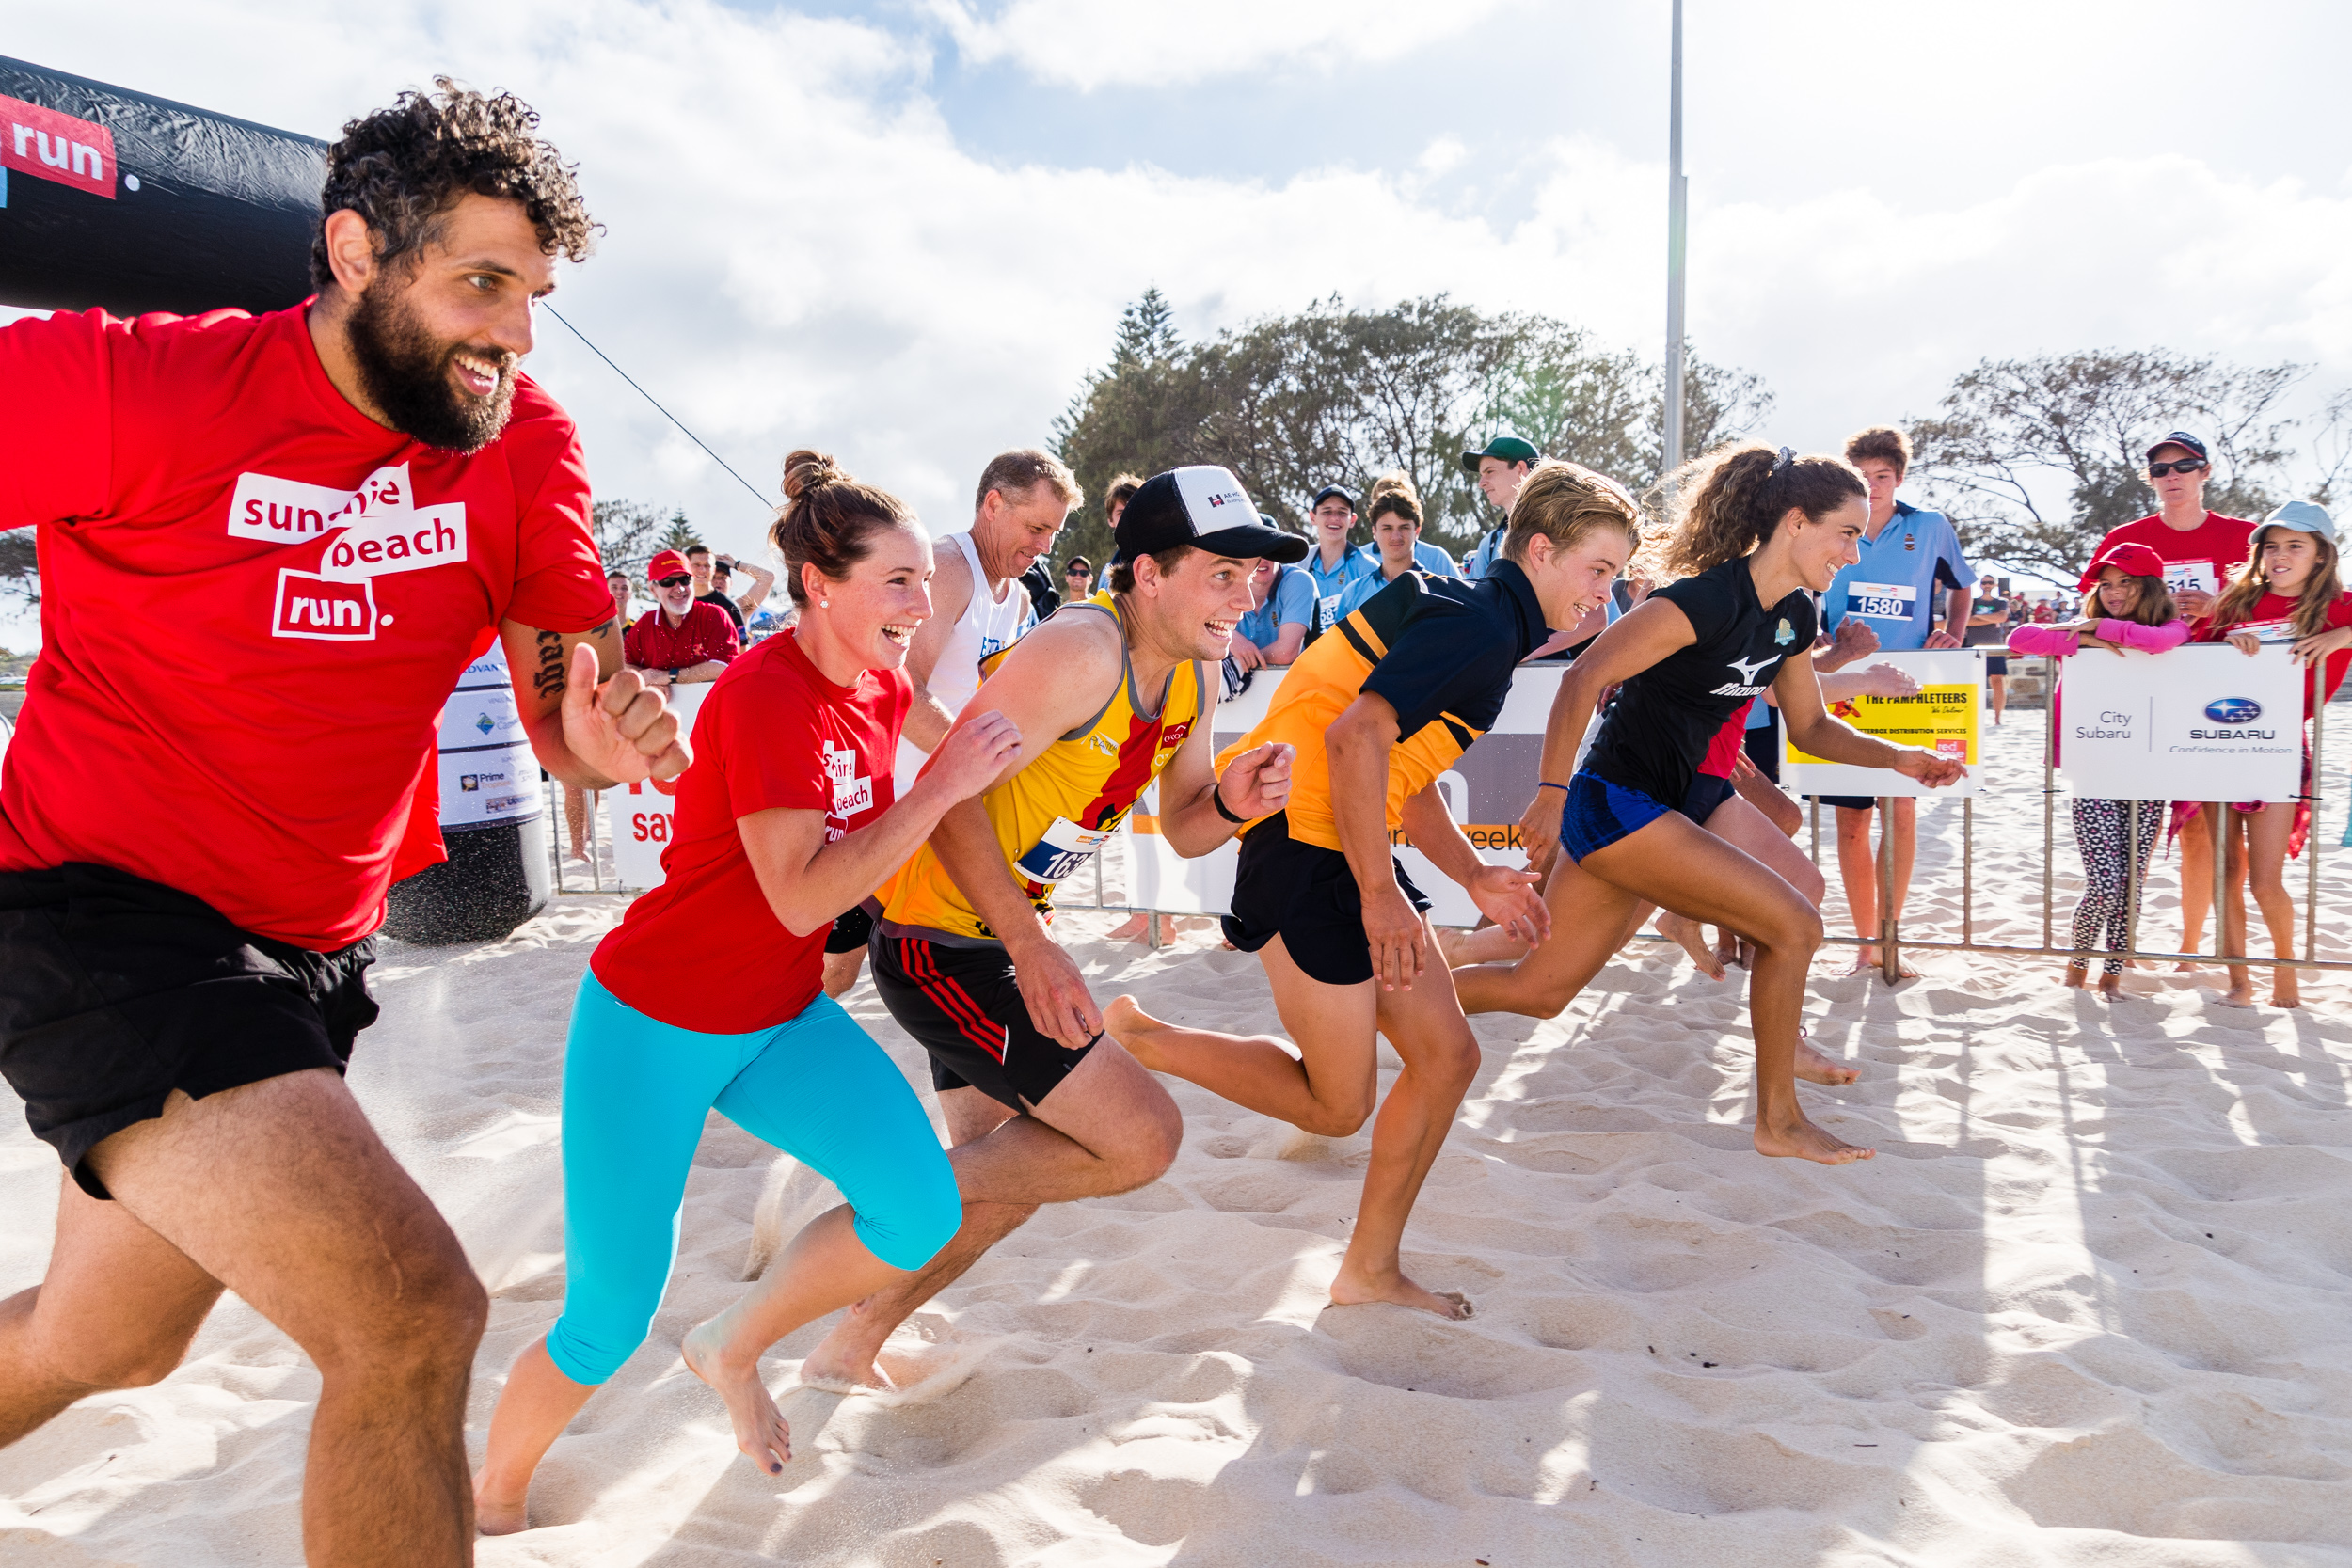 Spyrides_Kyle_Sunshine_Beach_Run_18.2.2018_DSC9159.jpg